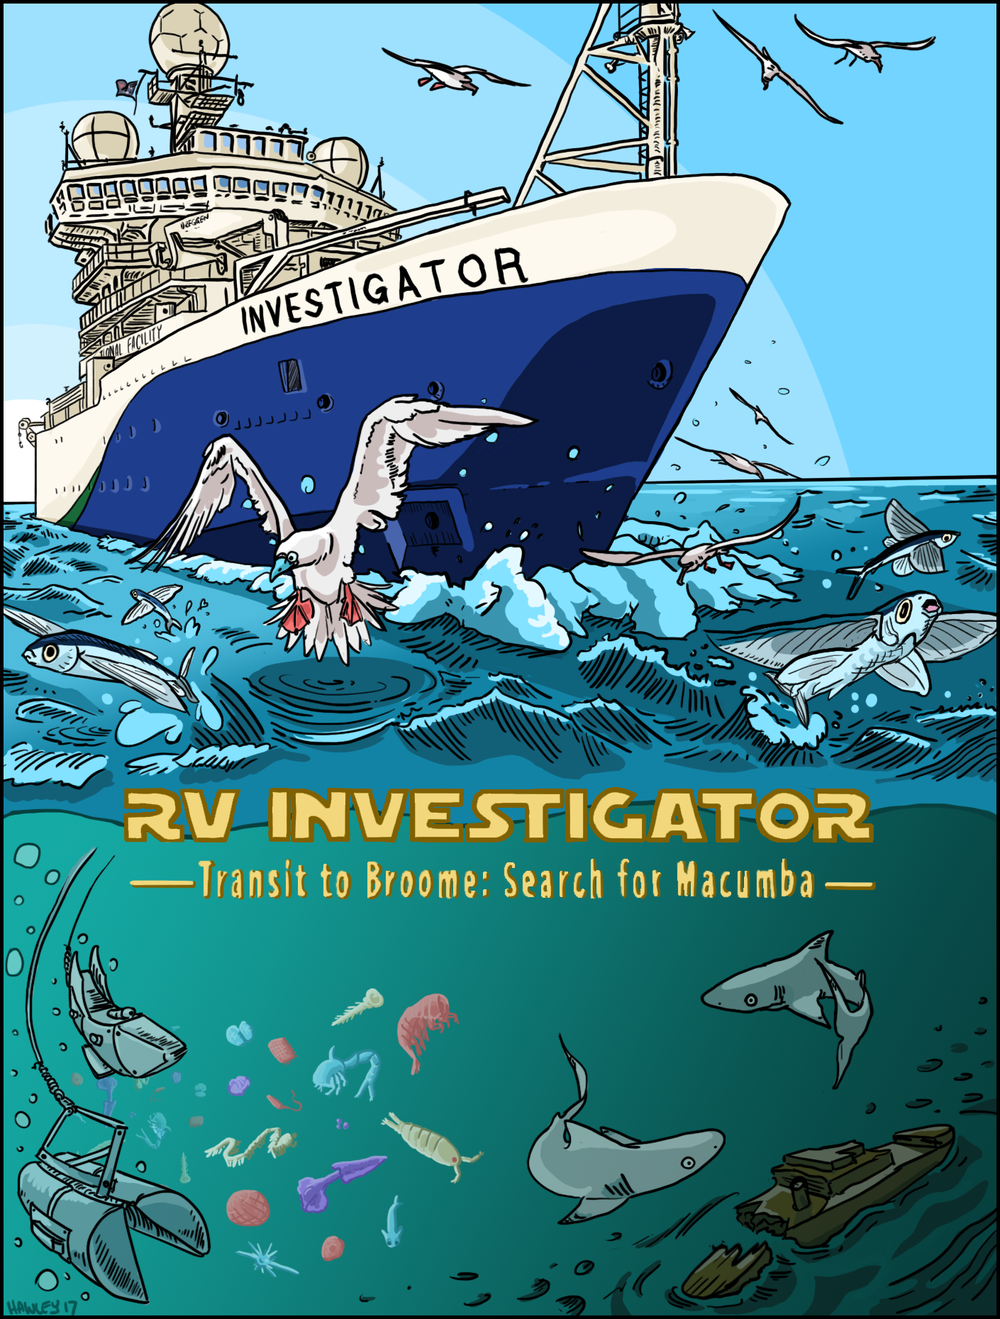 Final RV Investigator search for Macumba.png